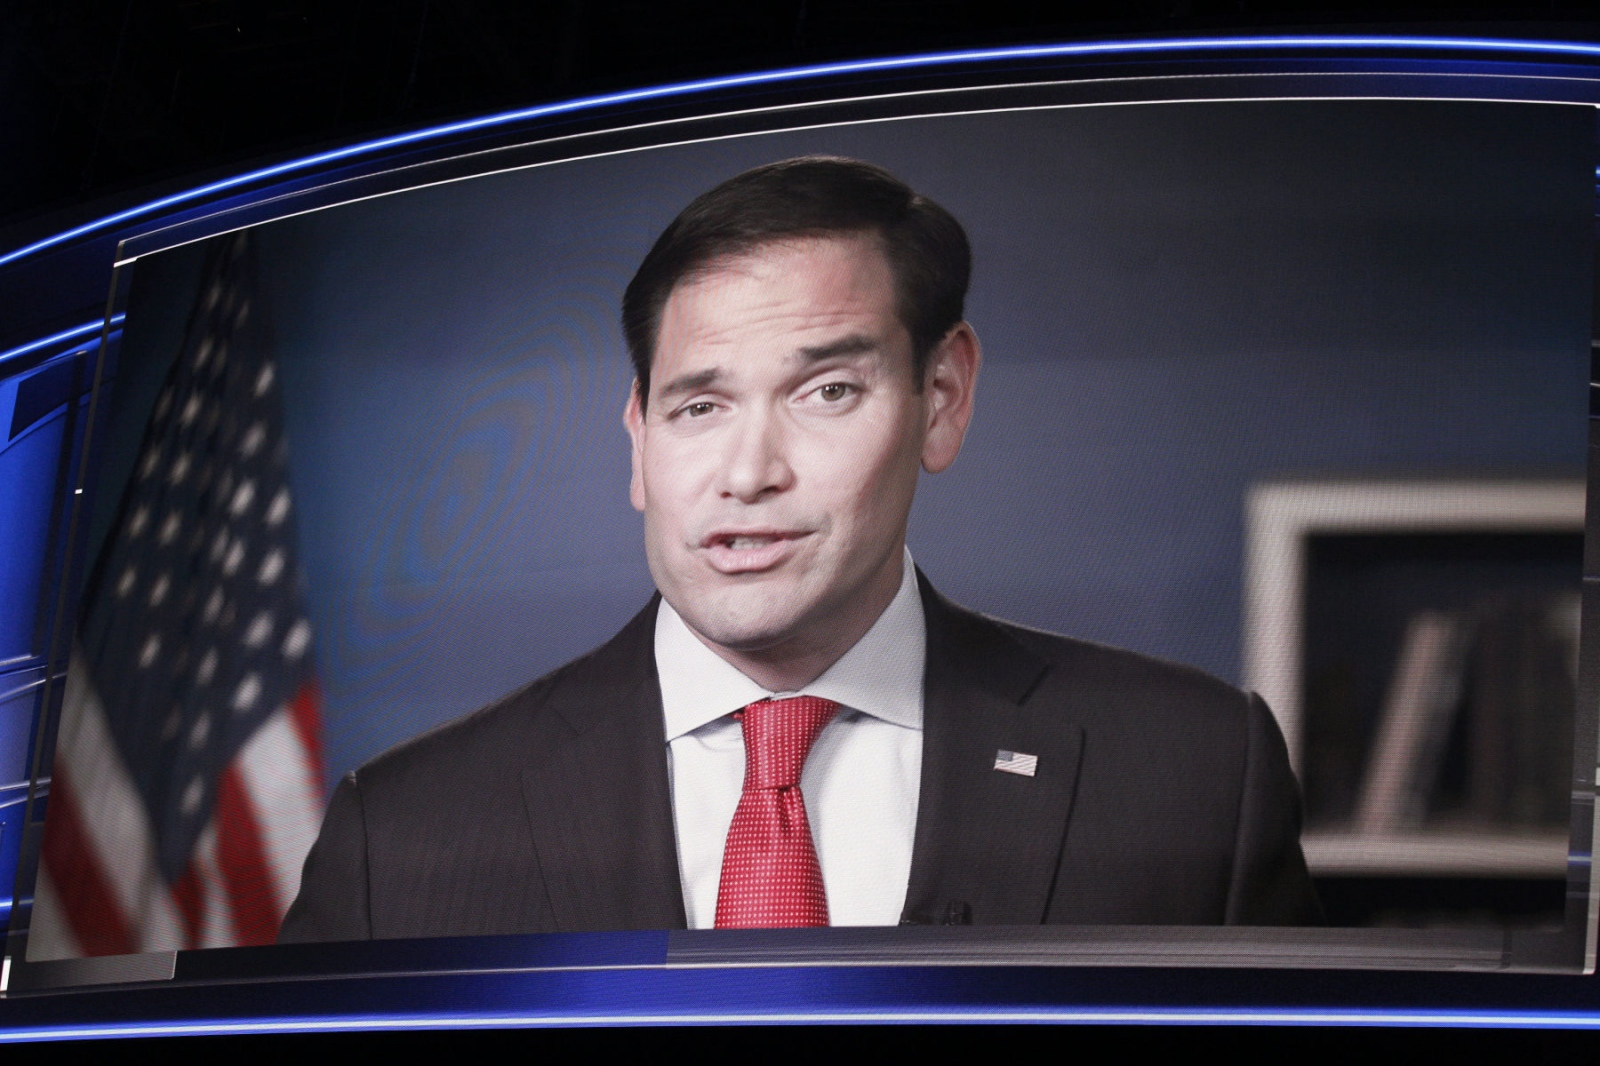 Marco Rubio appeared via satellite via Florida to give his support to Donald Trump at the Republican National Convention. July 17, 2016 (Kevin C Downs).